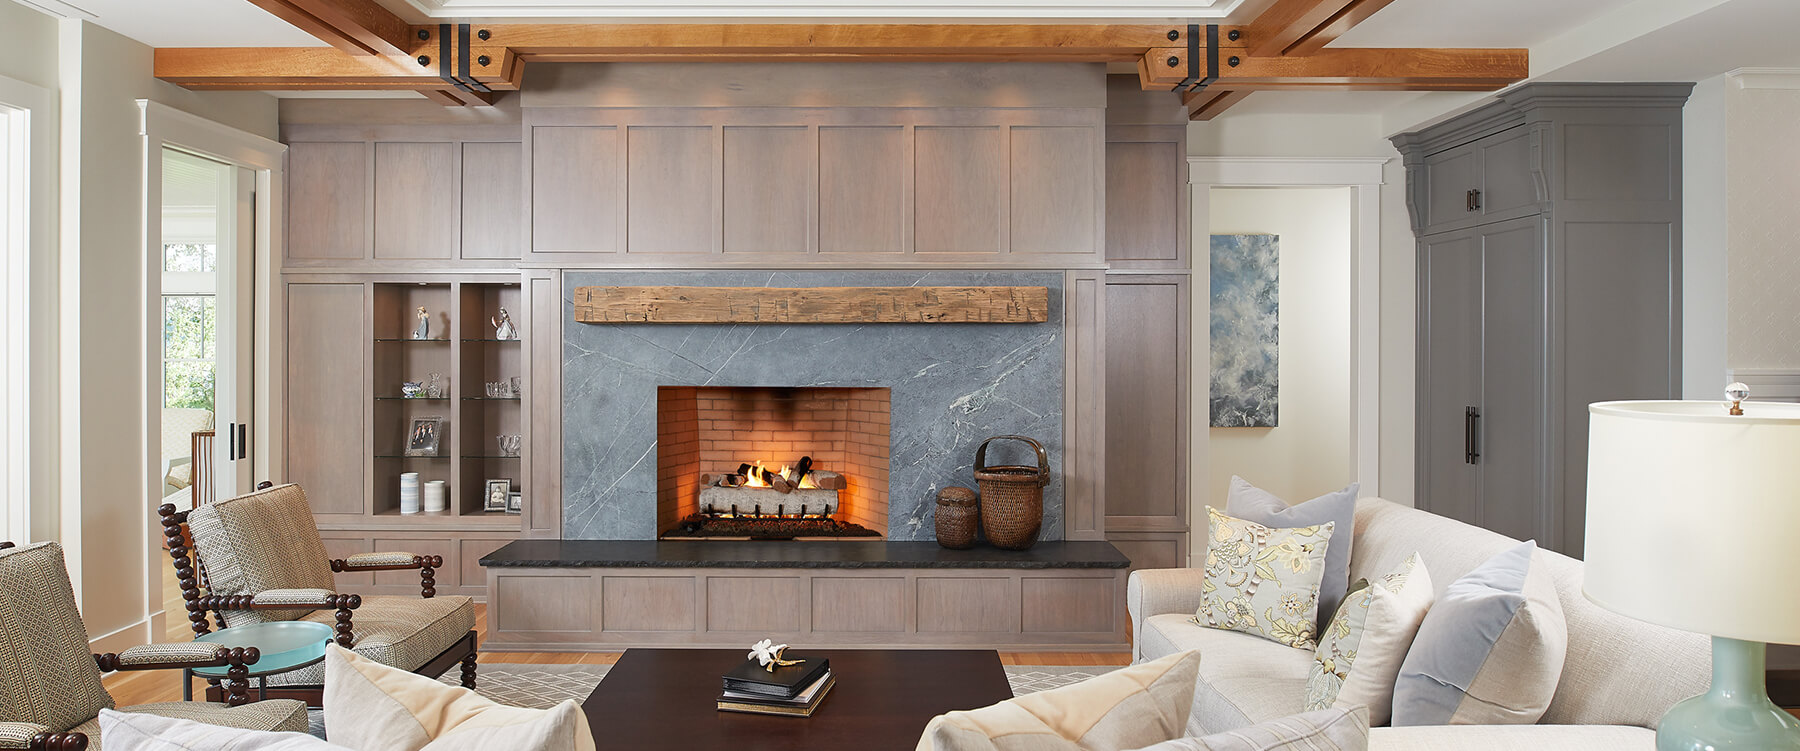 Lakefront cottage fireplace